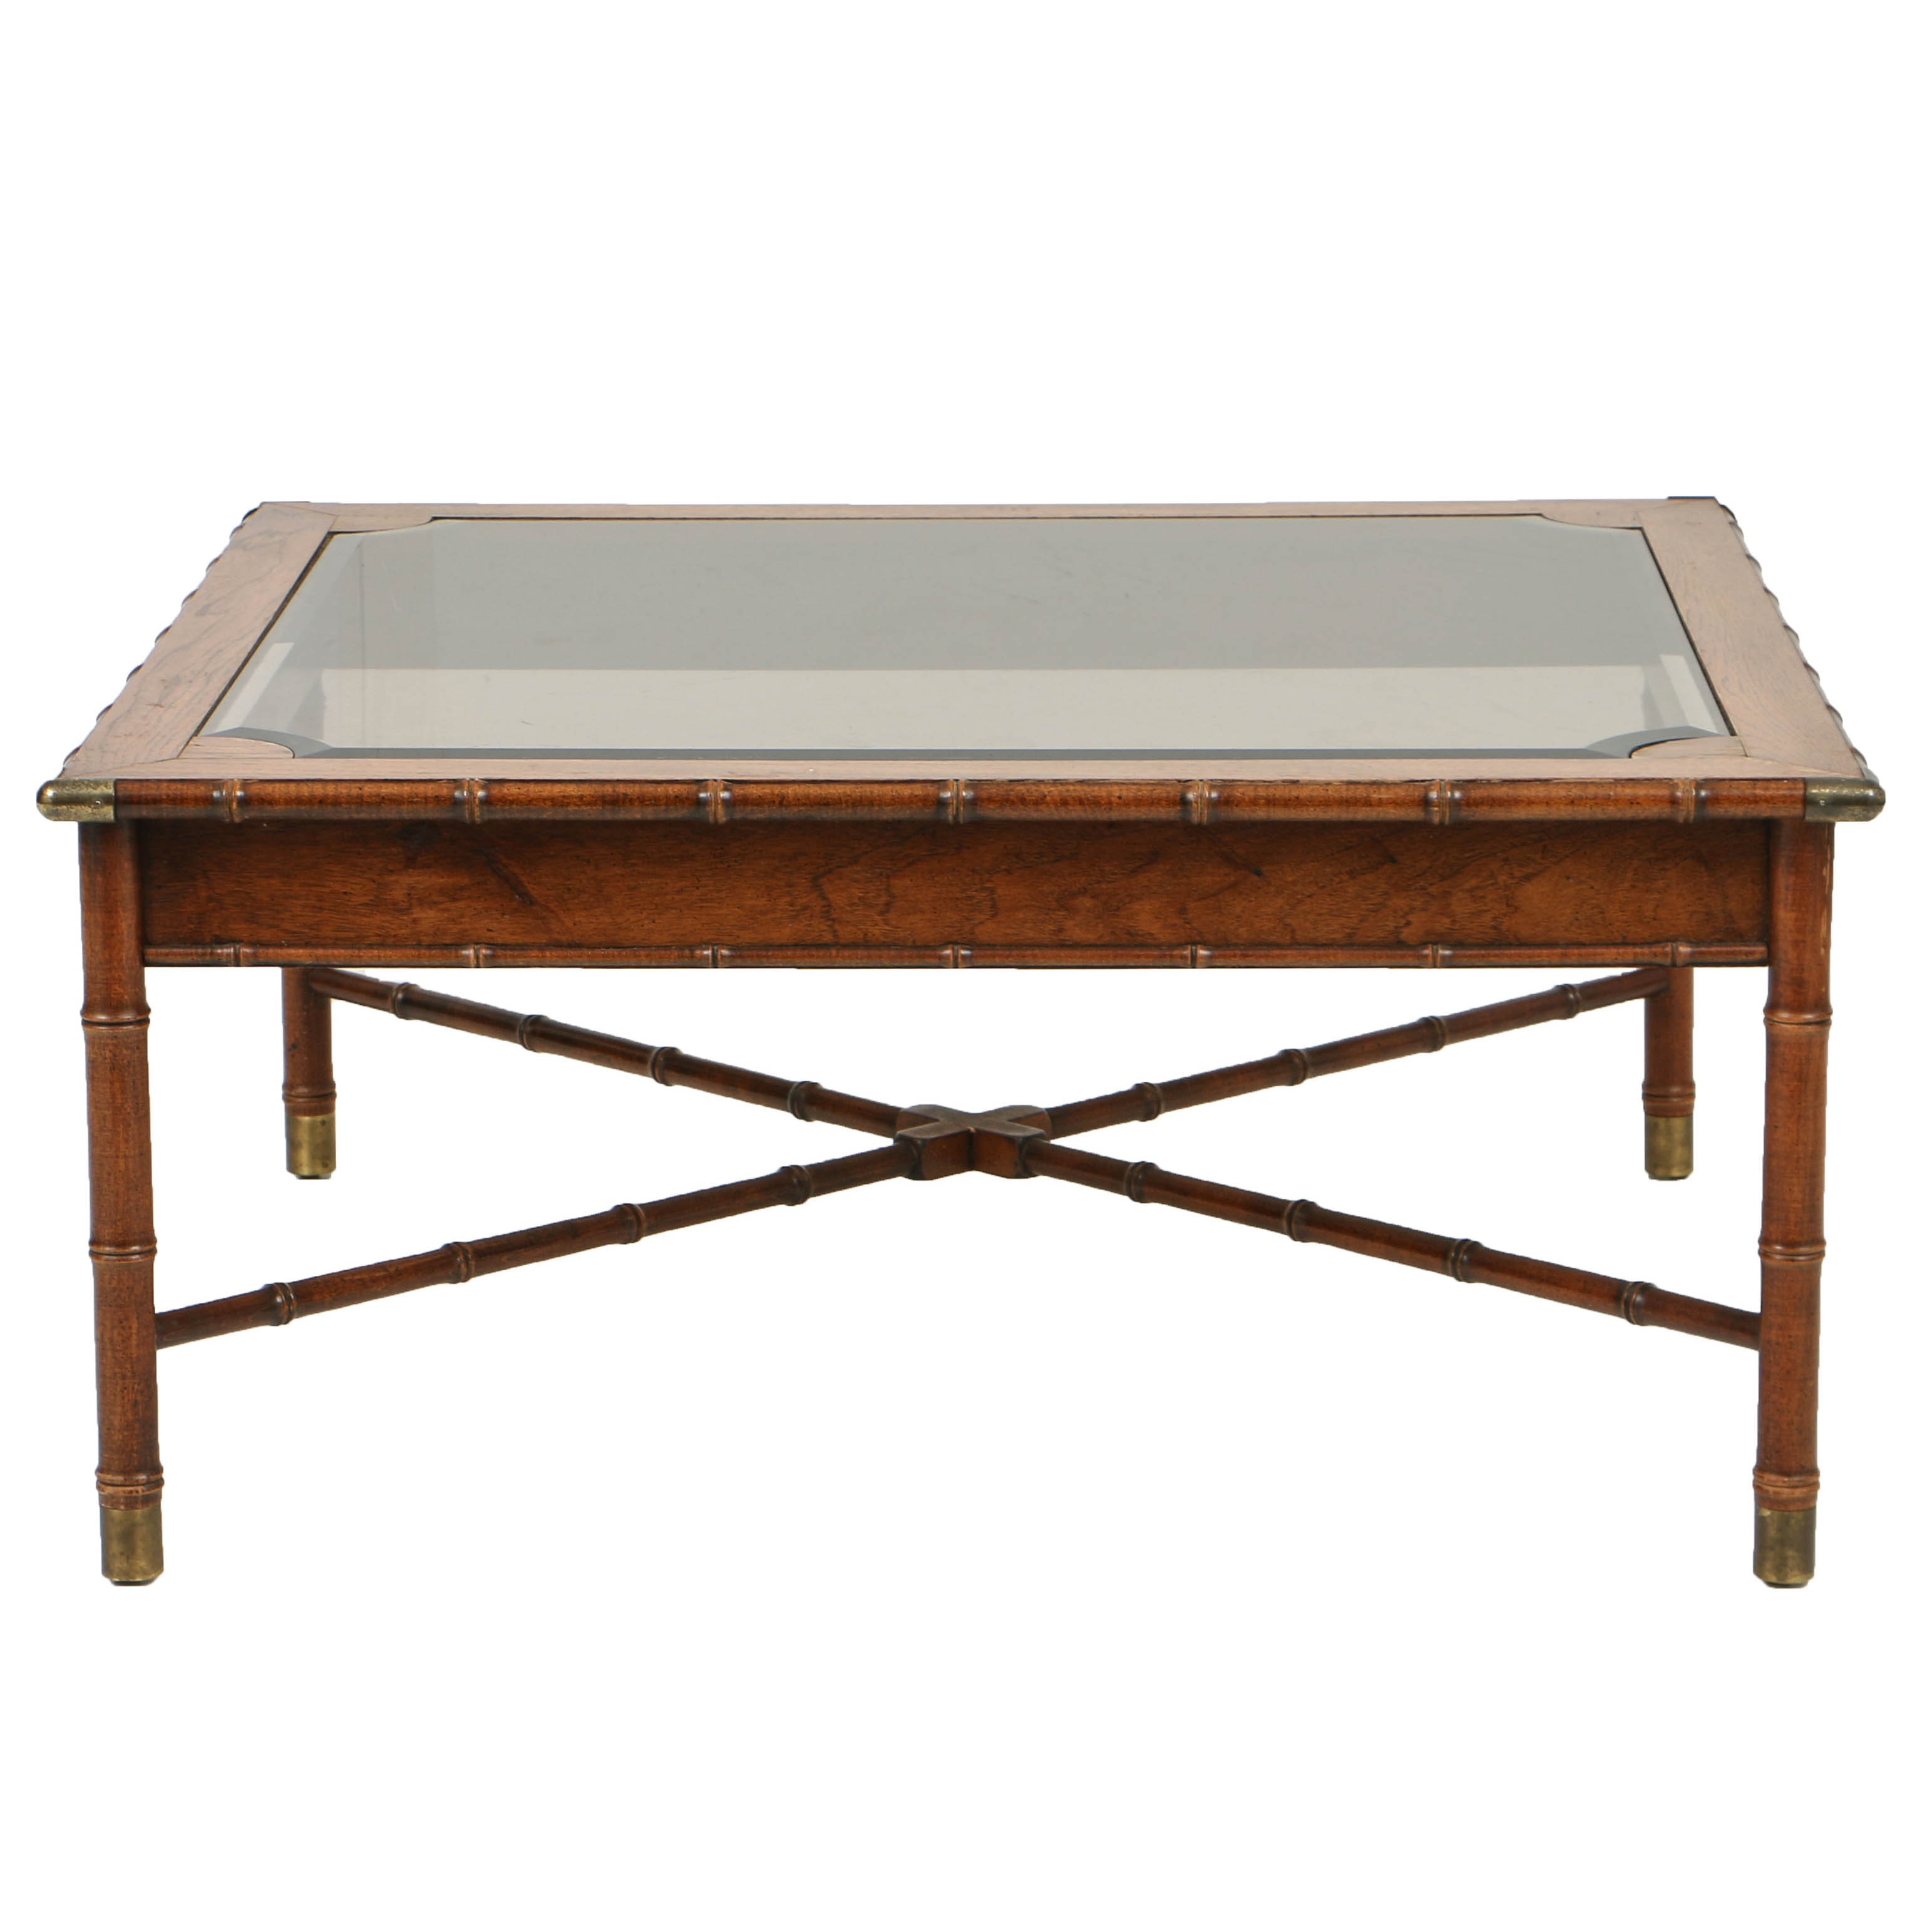 Vintage Faux Bamboo Coffee Table With Glass Top ...